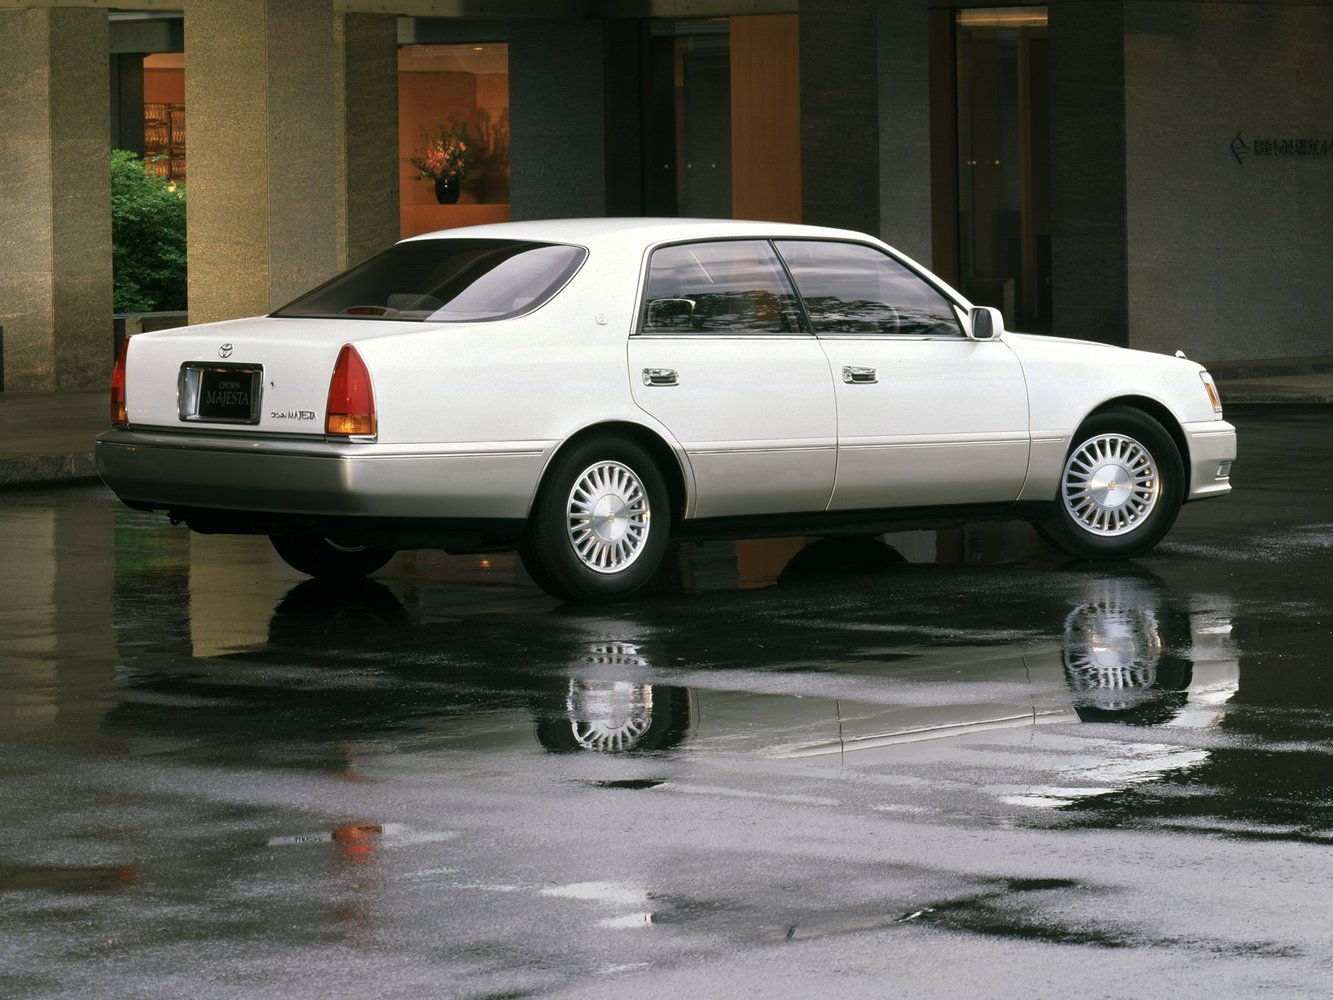 седан Toyota Crown Majesta 1995 - 1999г выпуска модификация 3.0 AT (220 л.с.)